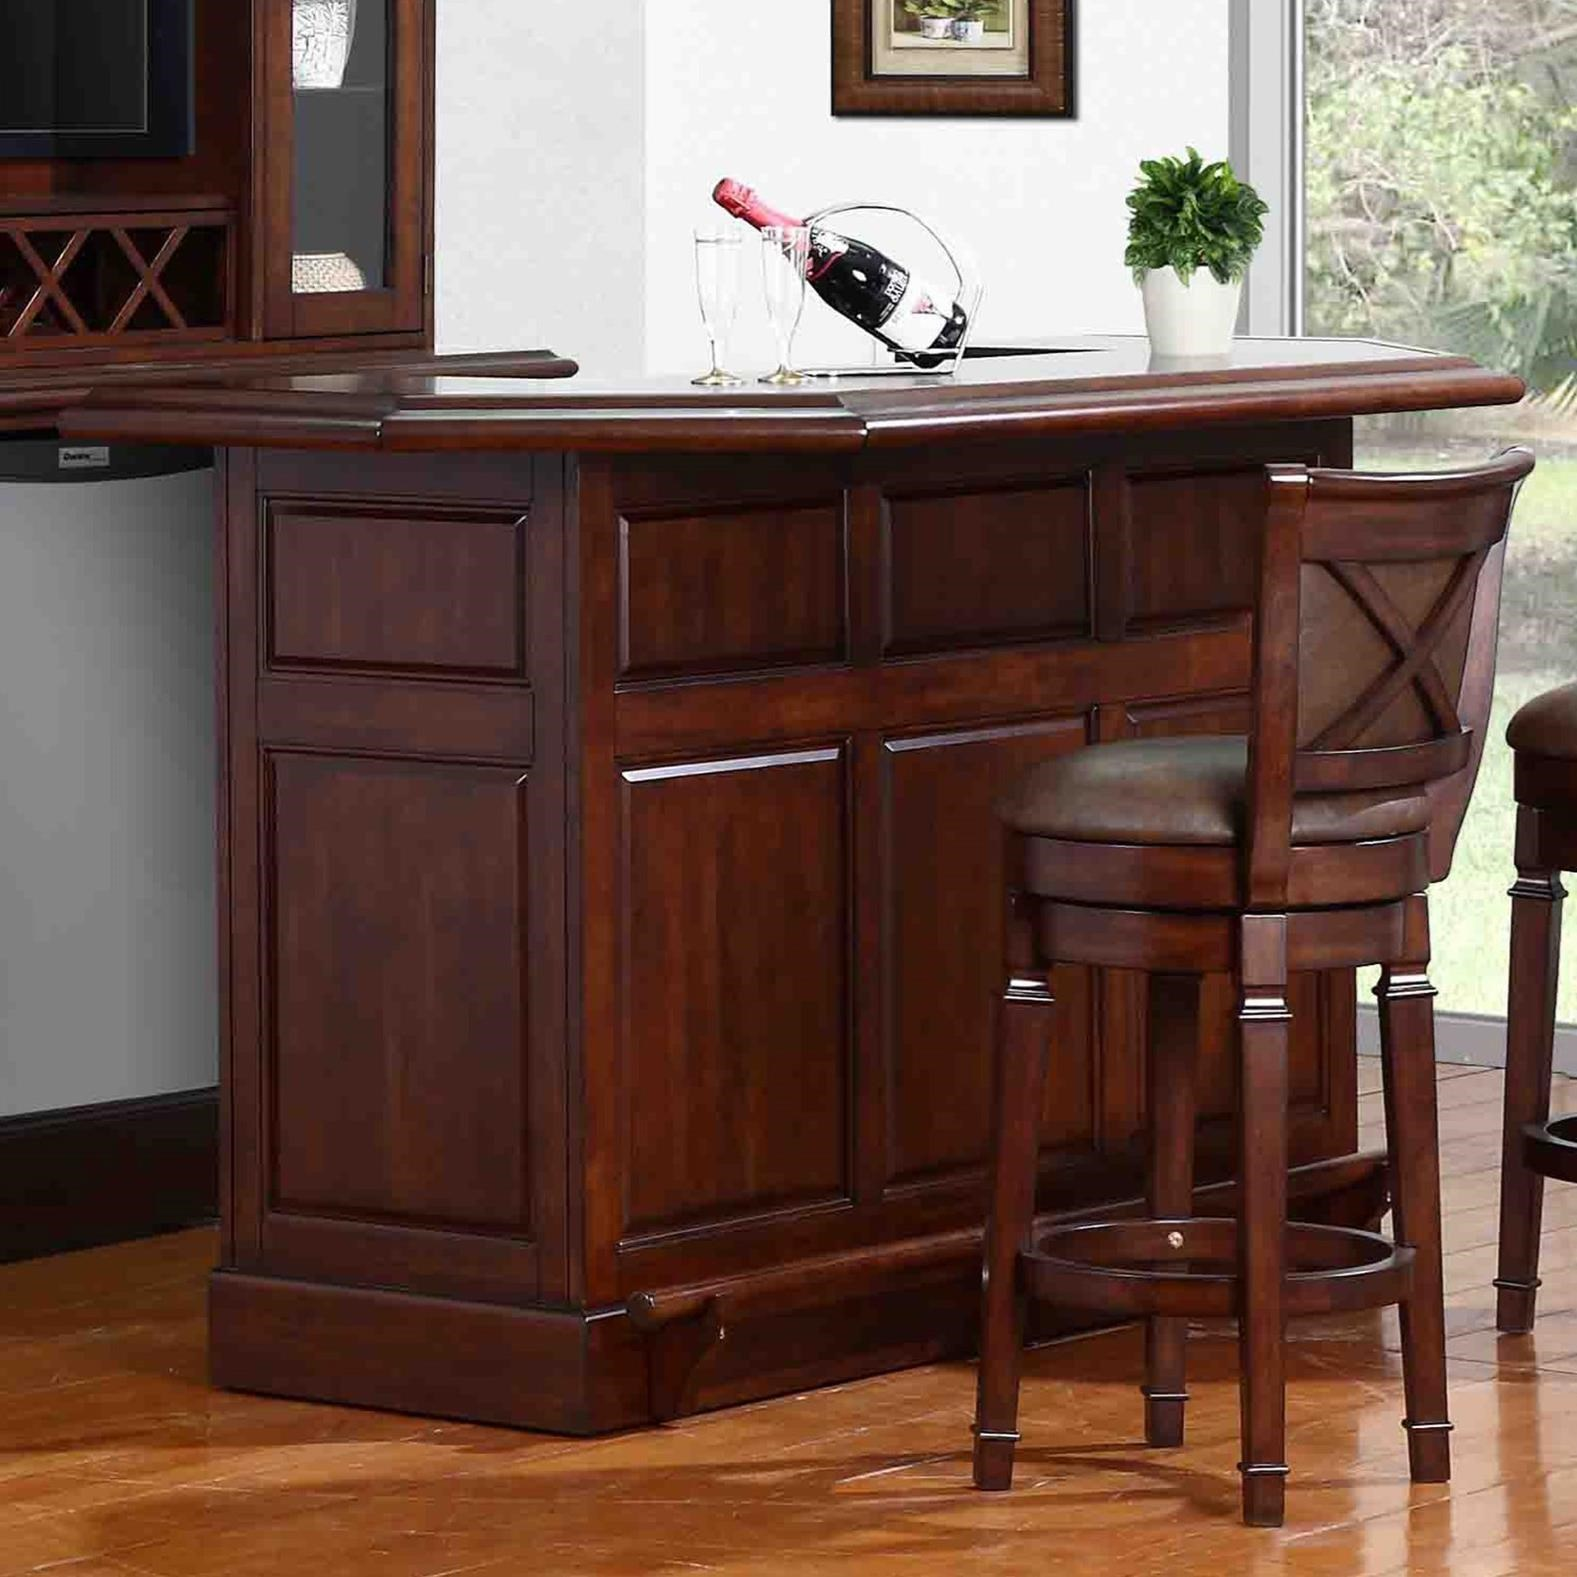 E C I Furniture Belvedere 0411 Bar With Built In Wine